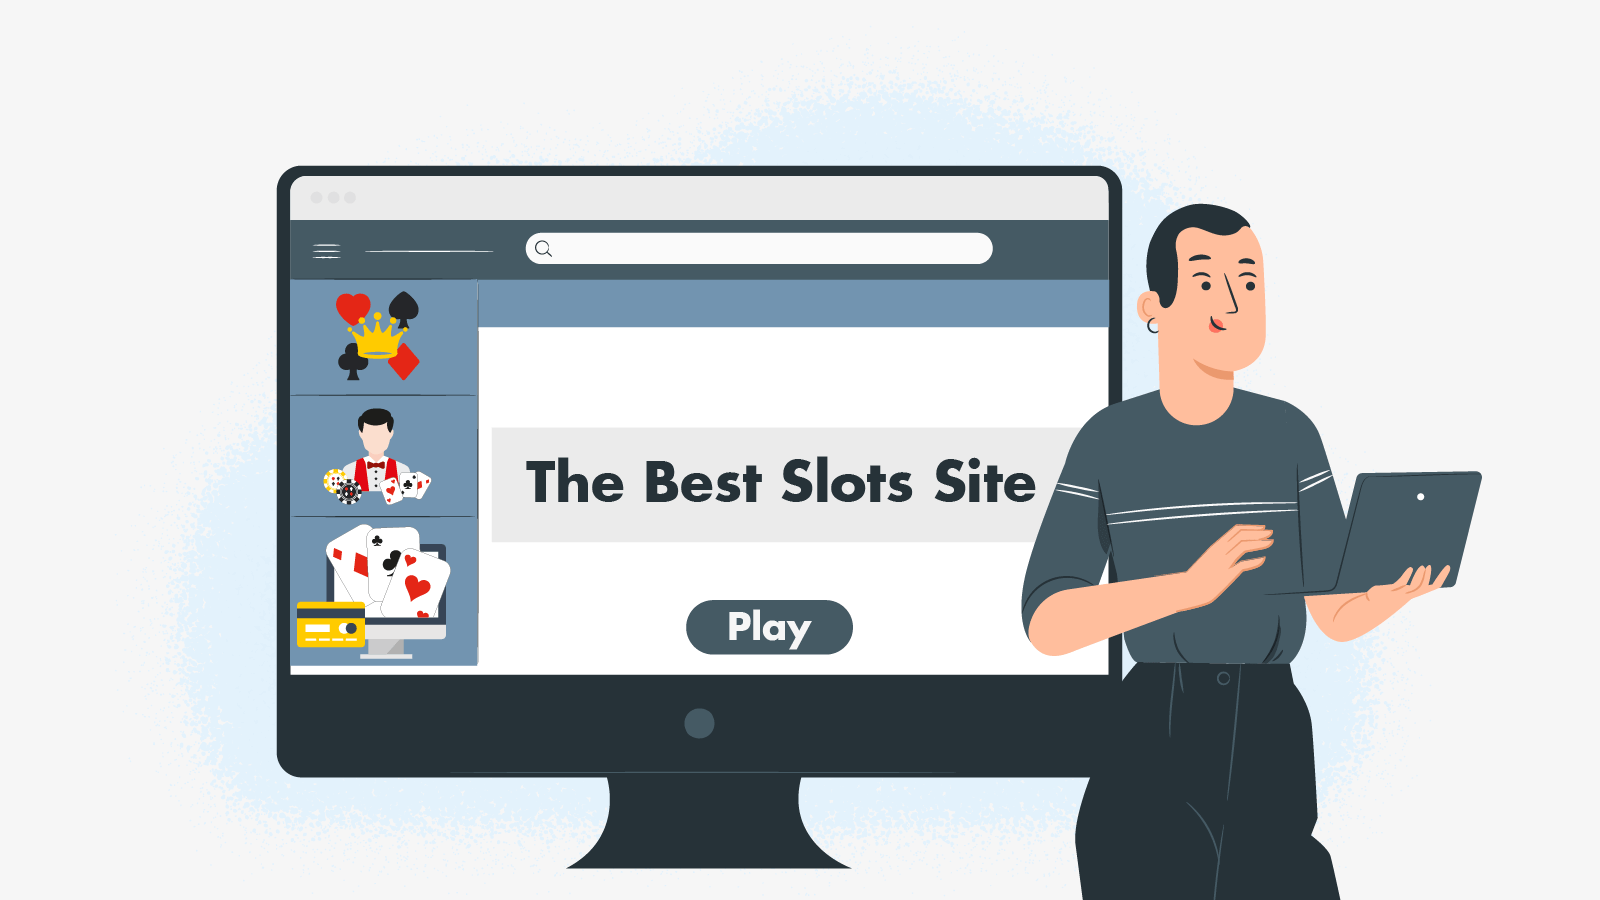 Picking the best slots site